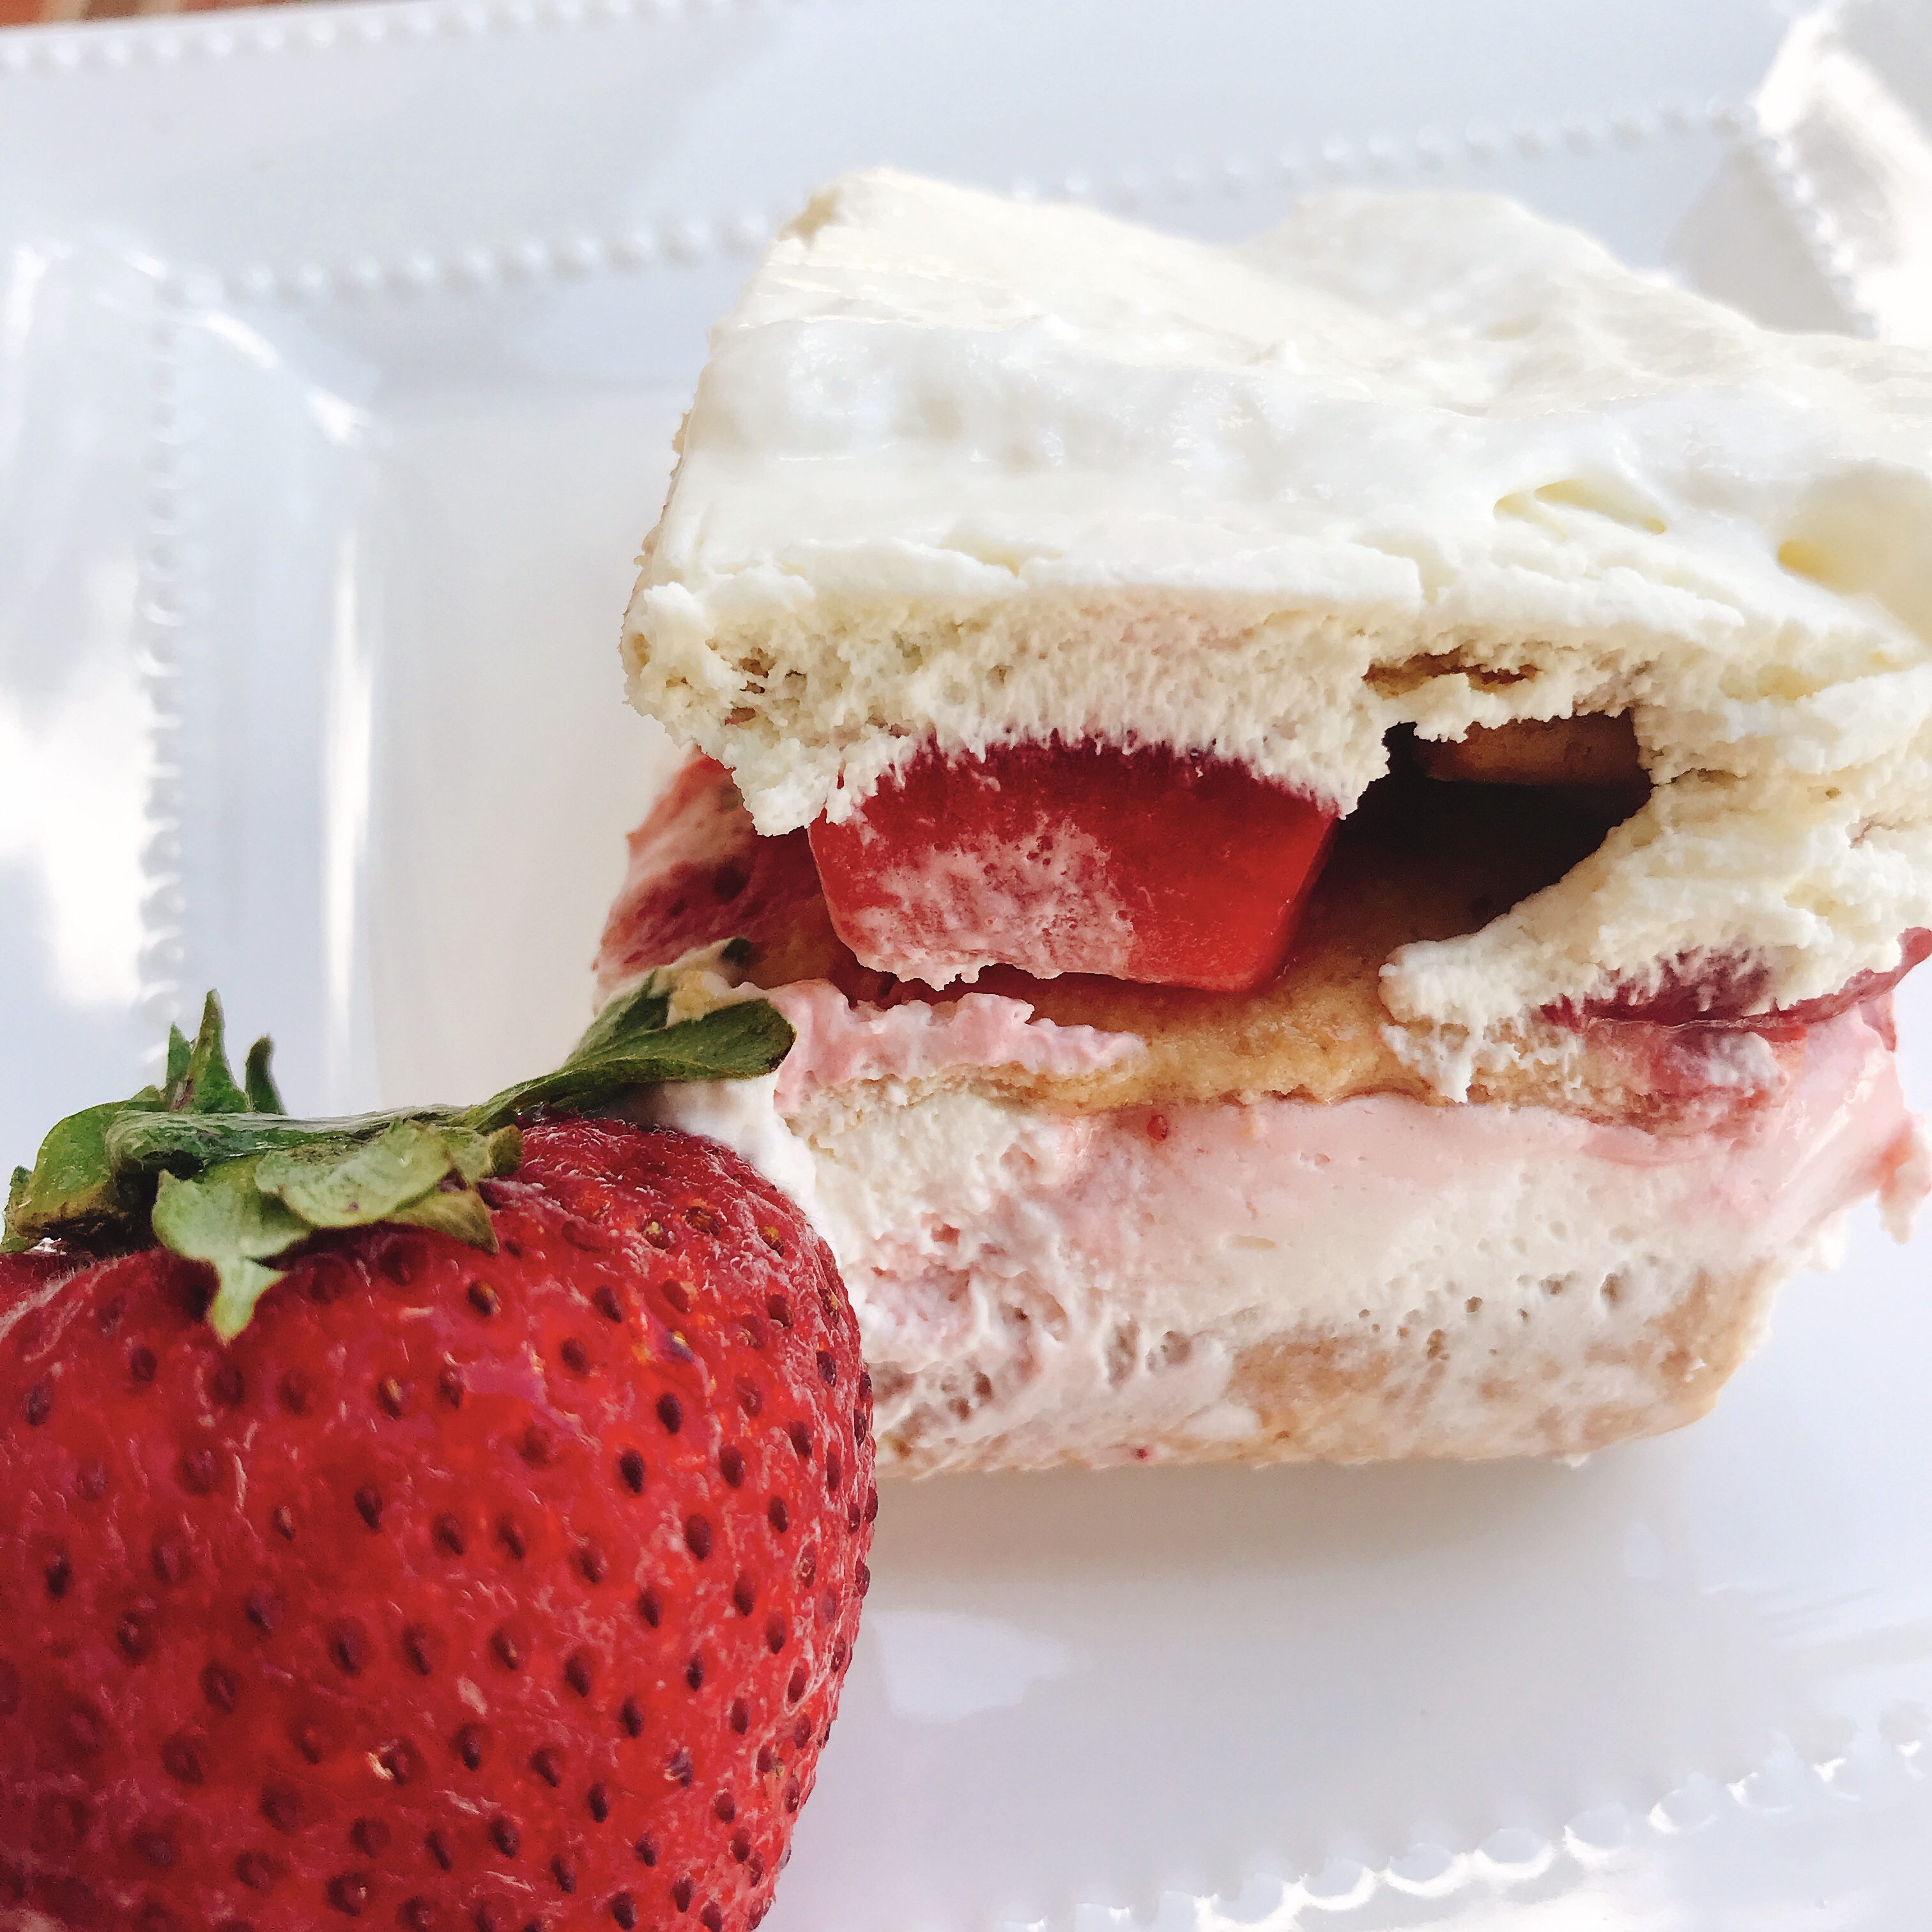 If you can hold yourself back from diving in fork-first immediately after building this beauty, it actually gets better with age. Okay, it gets better after chilling for about four hours so the graham crackers soften slightly and the berries and cream join forces just enough.